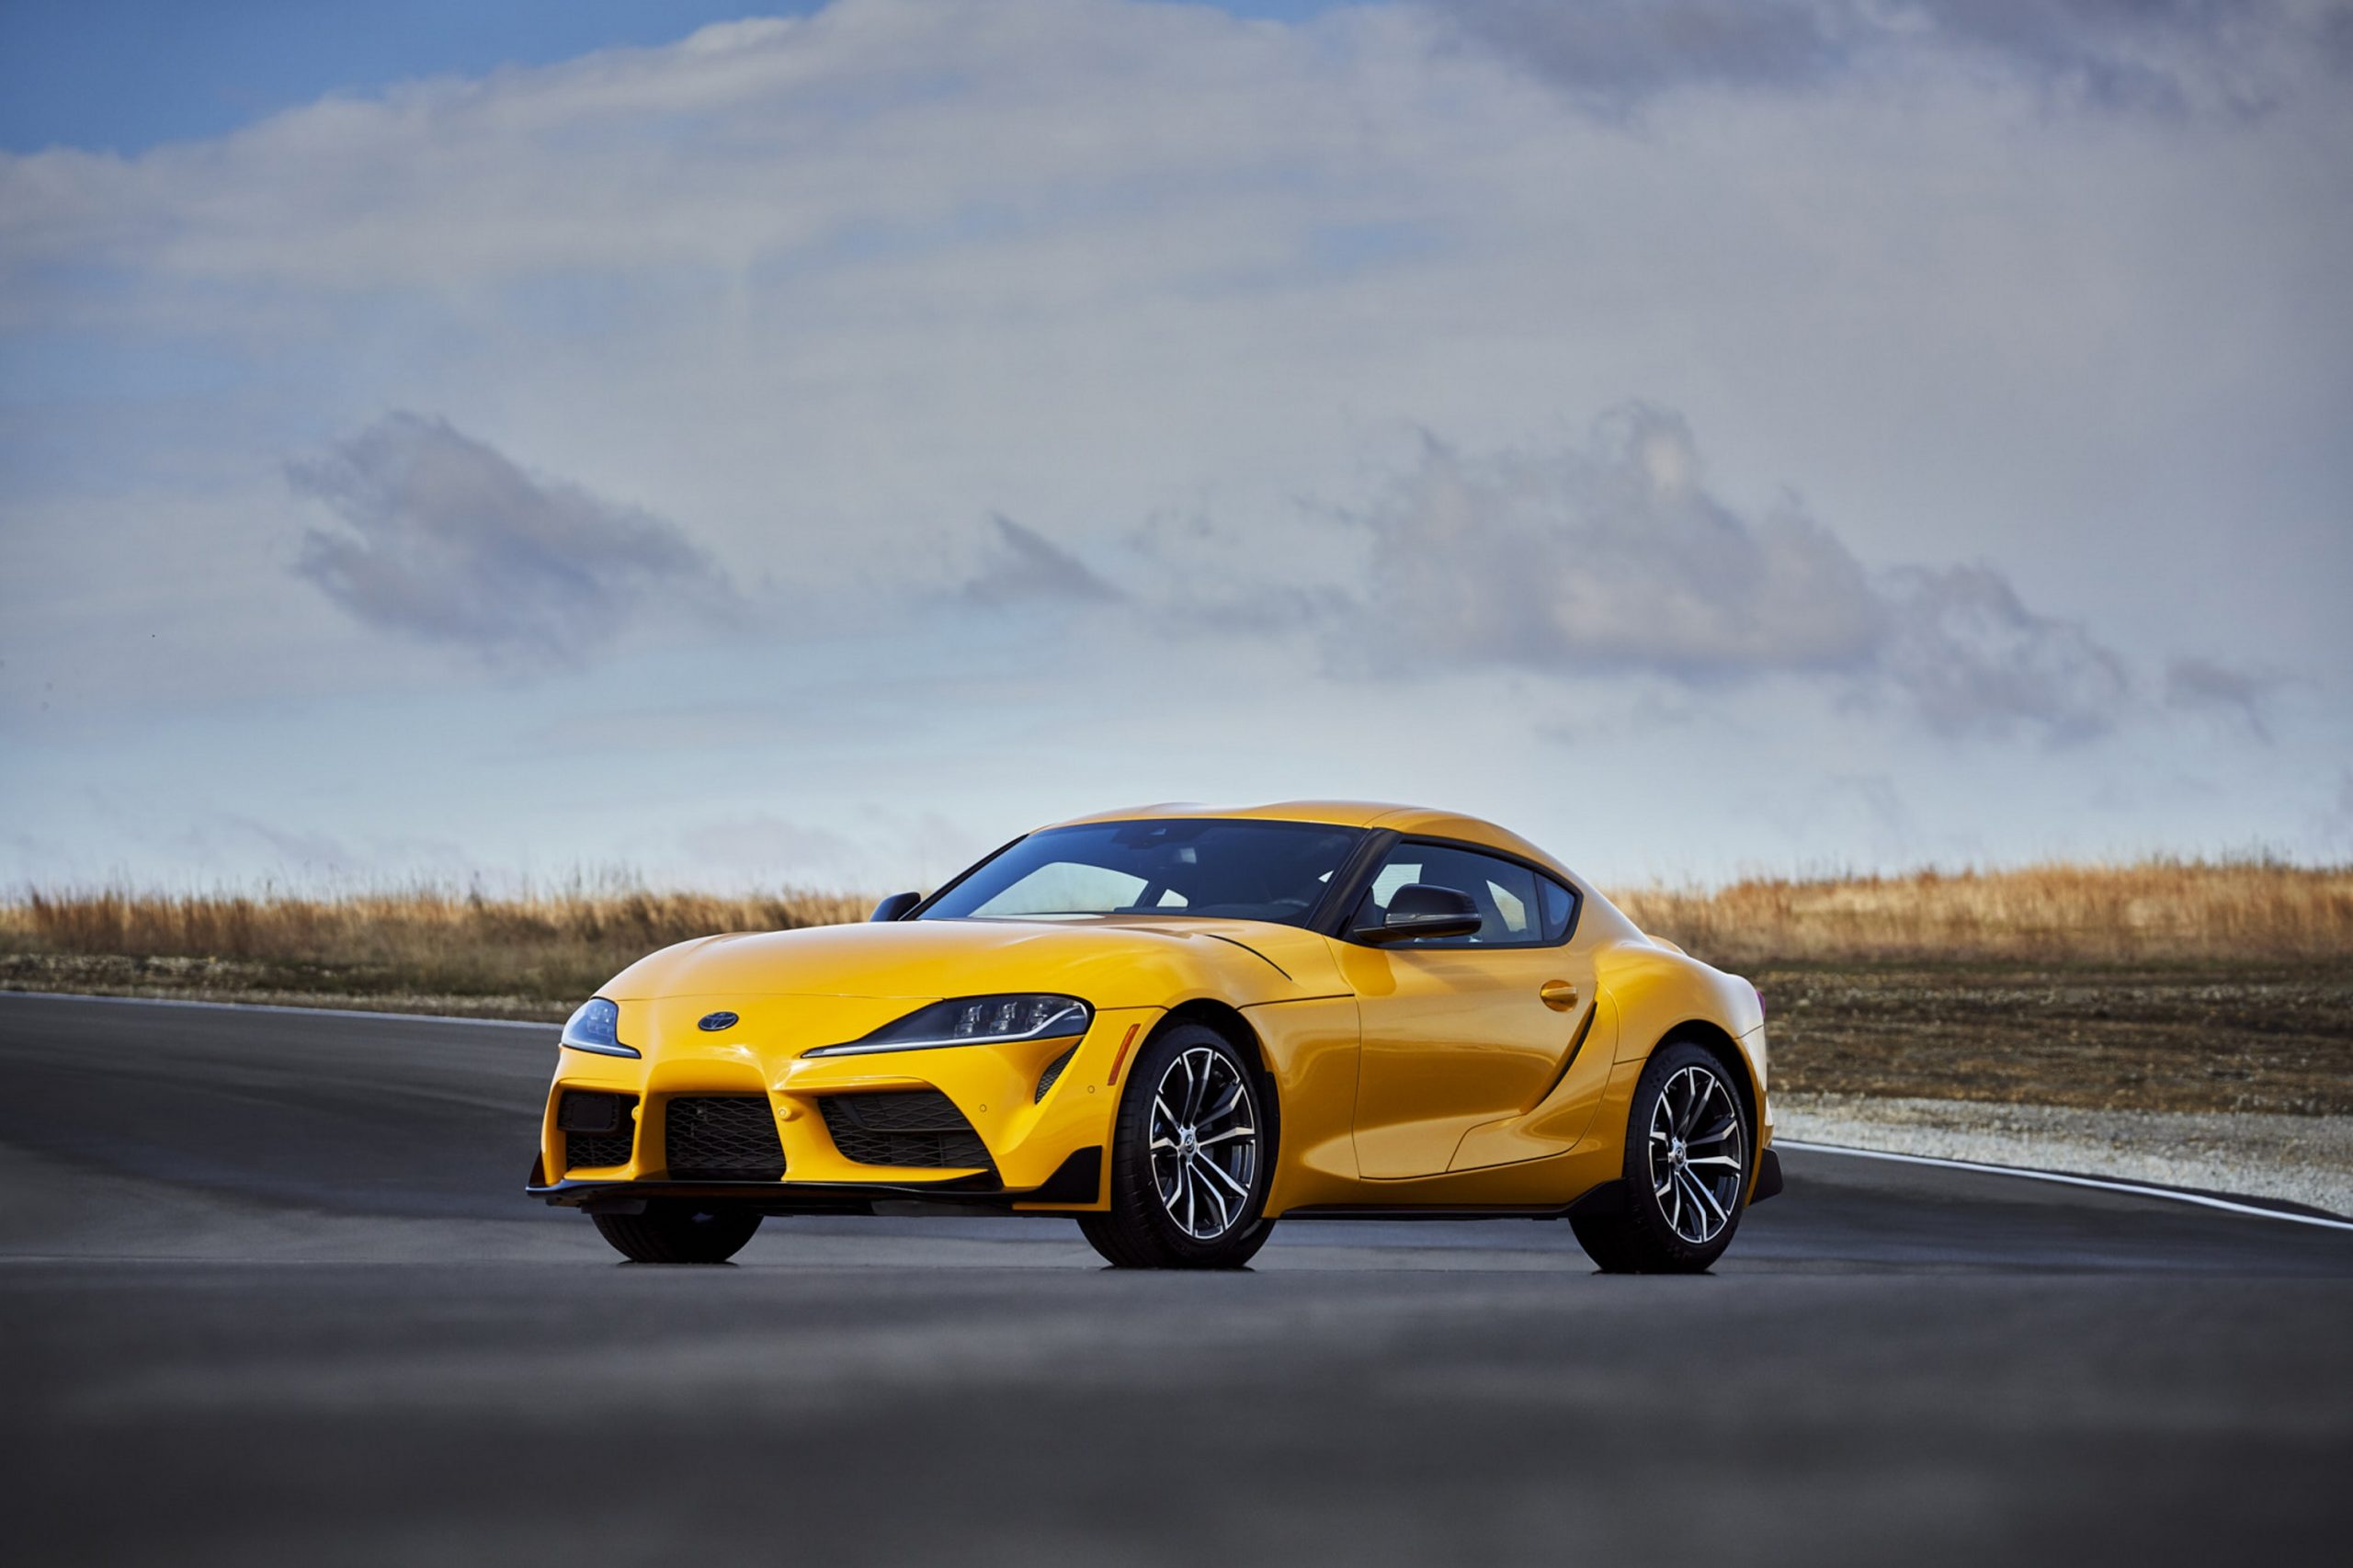 A yellow 2022 Toyota Supra 2.0 shot from the 3/4 angle on a racetrack